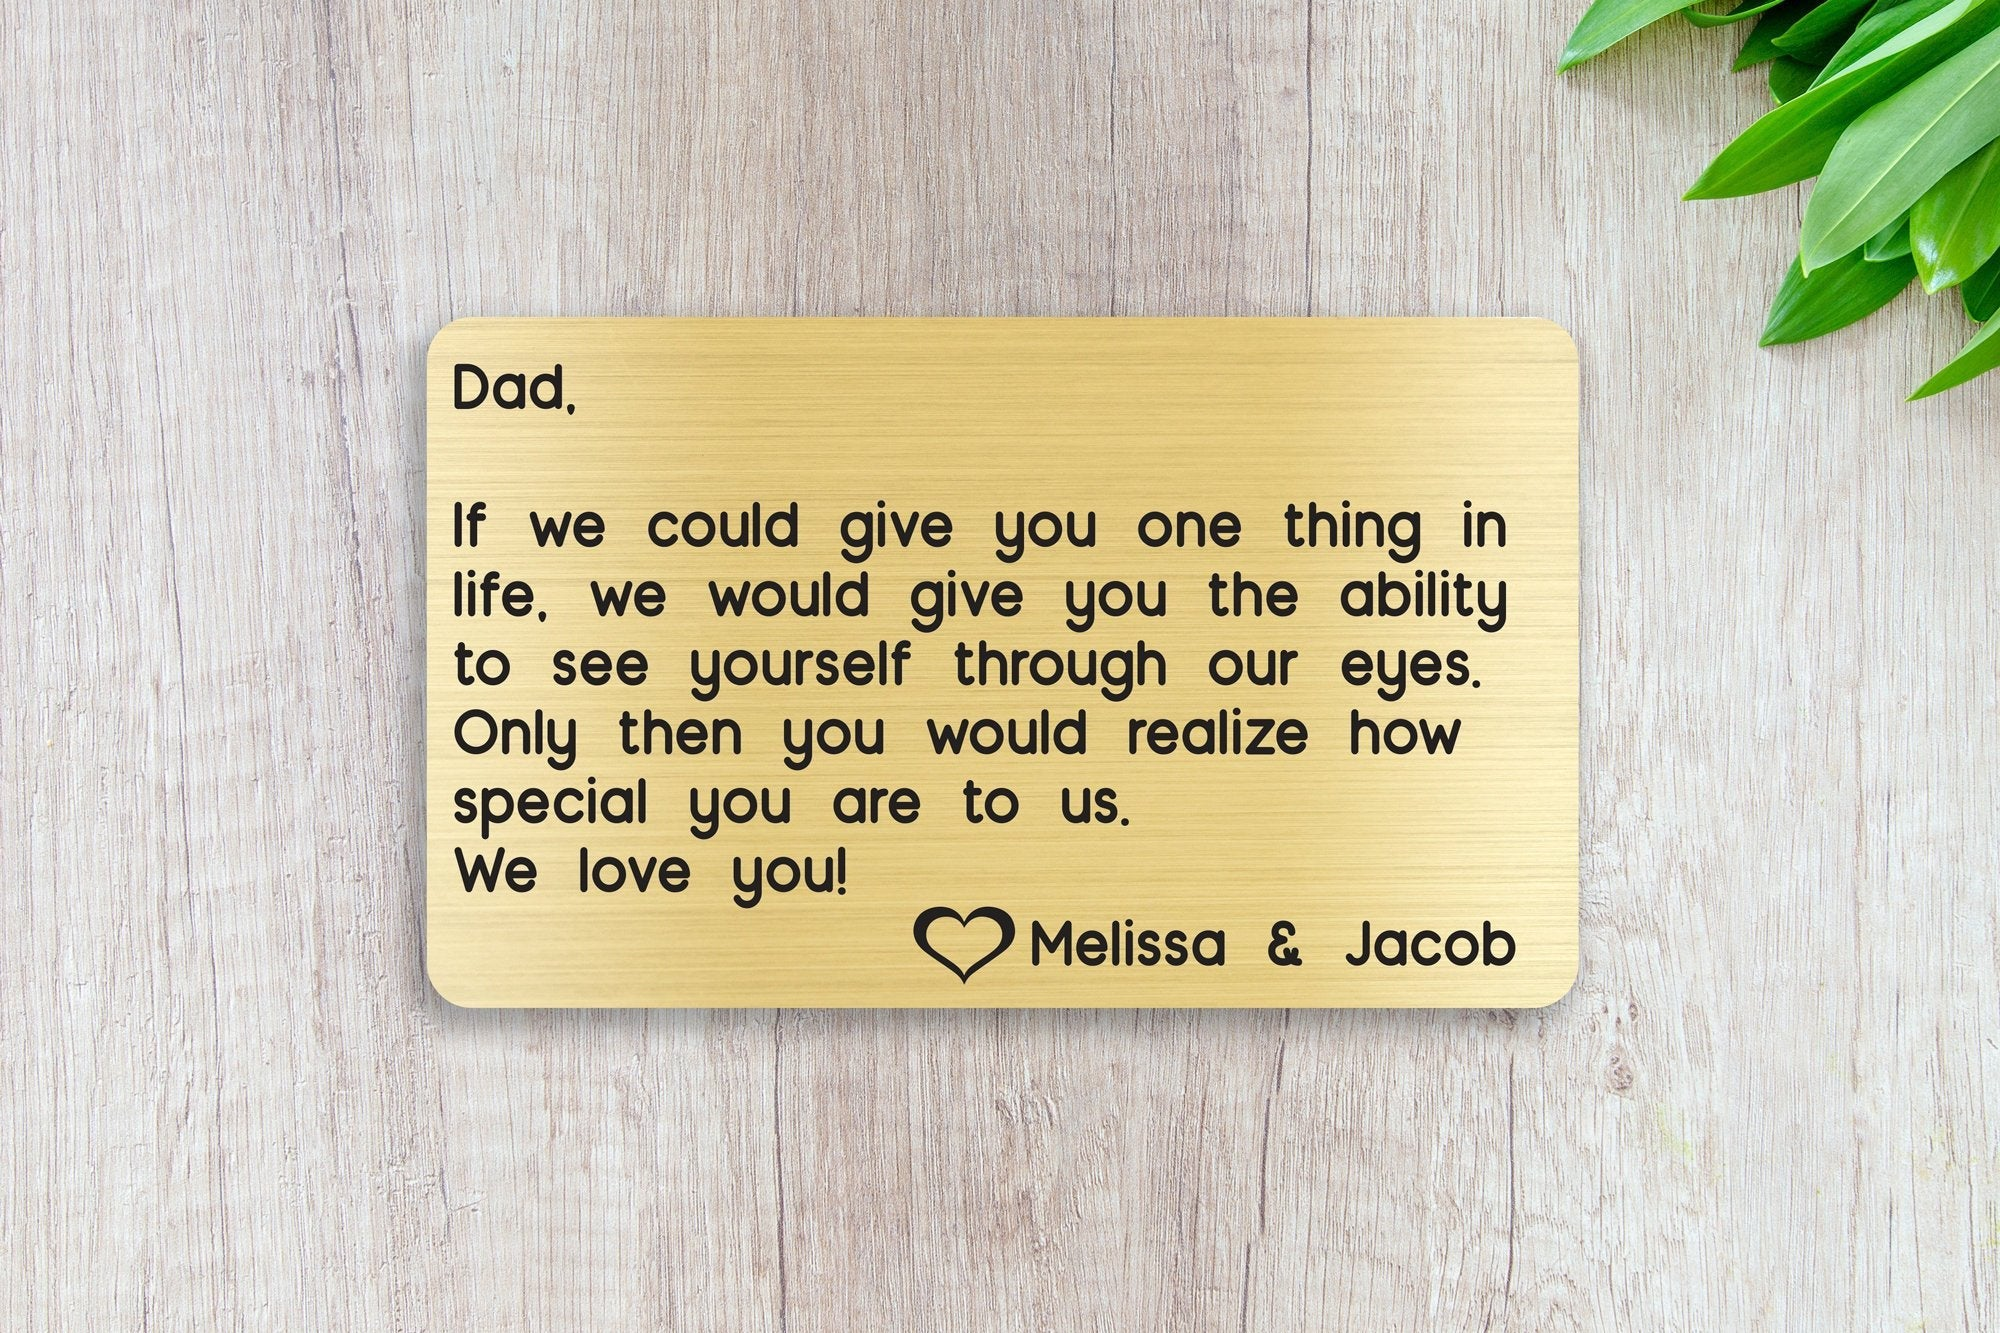 Personalized Engraved Wallet Card Insert, Special Dad Gift, Father's Day, From the Kids, Gold